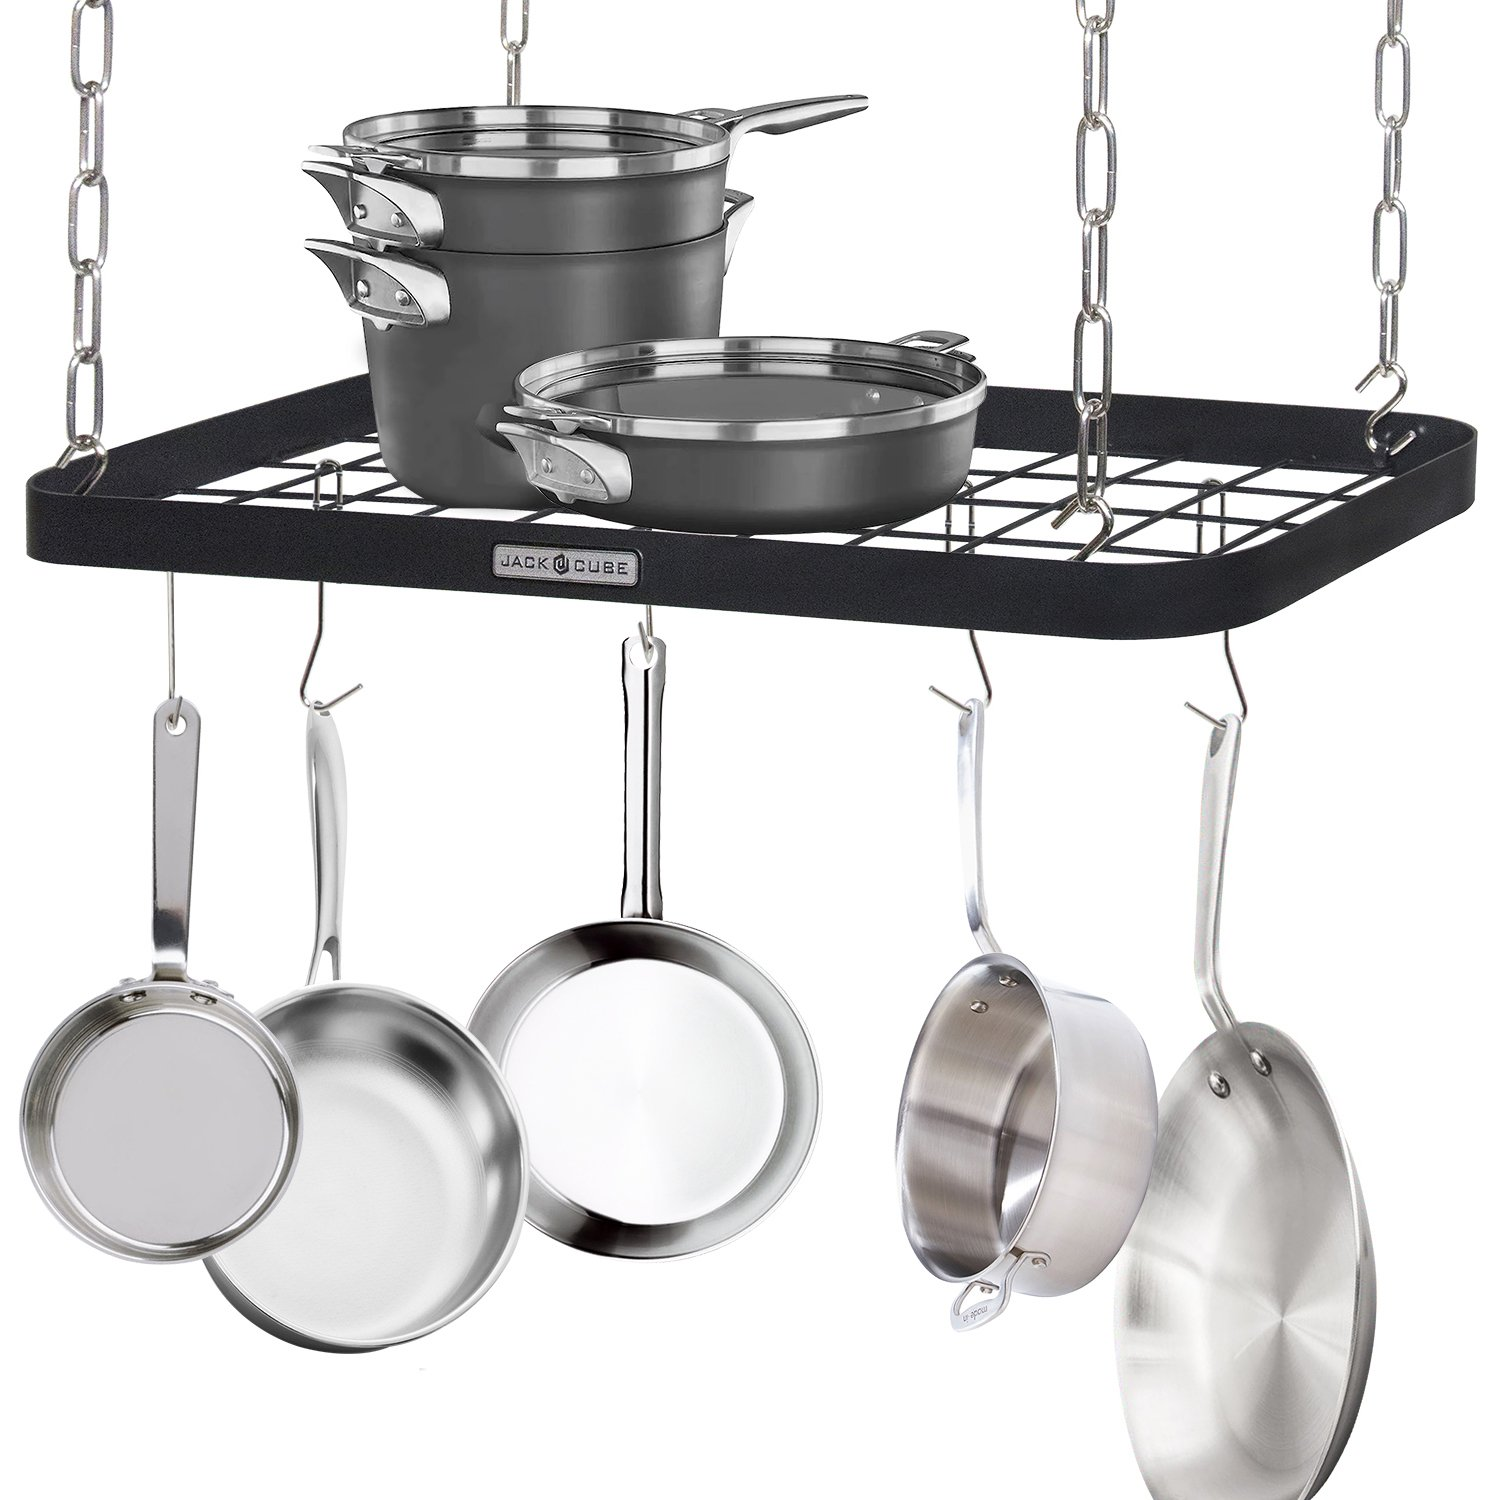 JackCubeDesign Ceiling Mount Grid Pot Pan Rack Hanger Organizer Kitchen Storage Shelf Tray Holder with Utility 8 Hooks(24.4 x 11.8 x 1.2 inches) – :MK397B